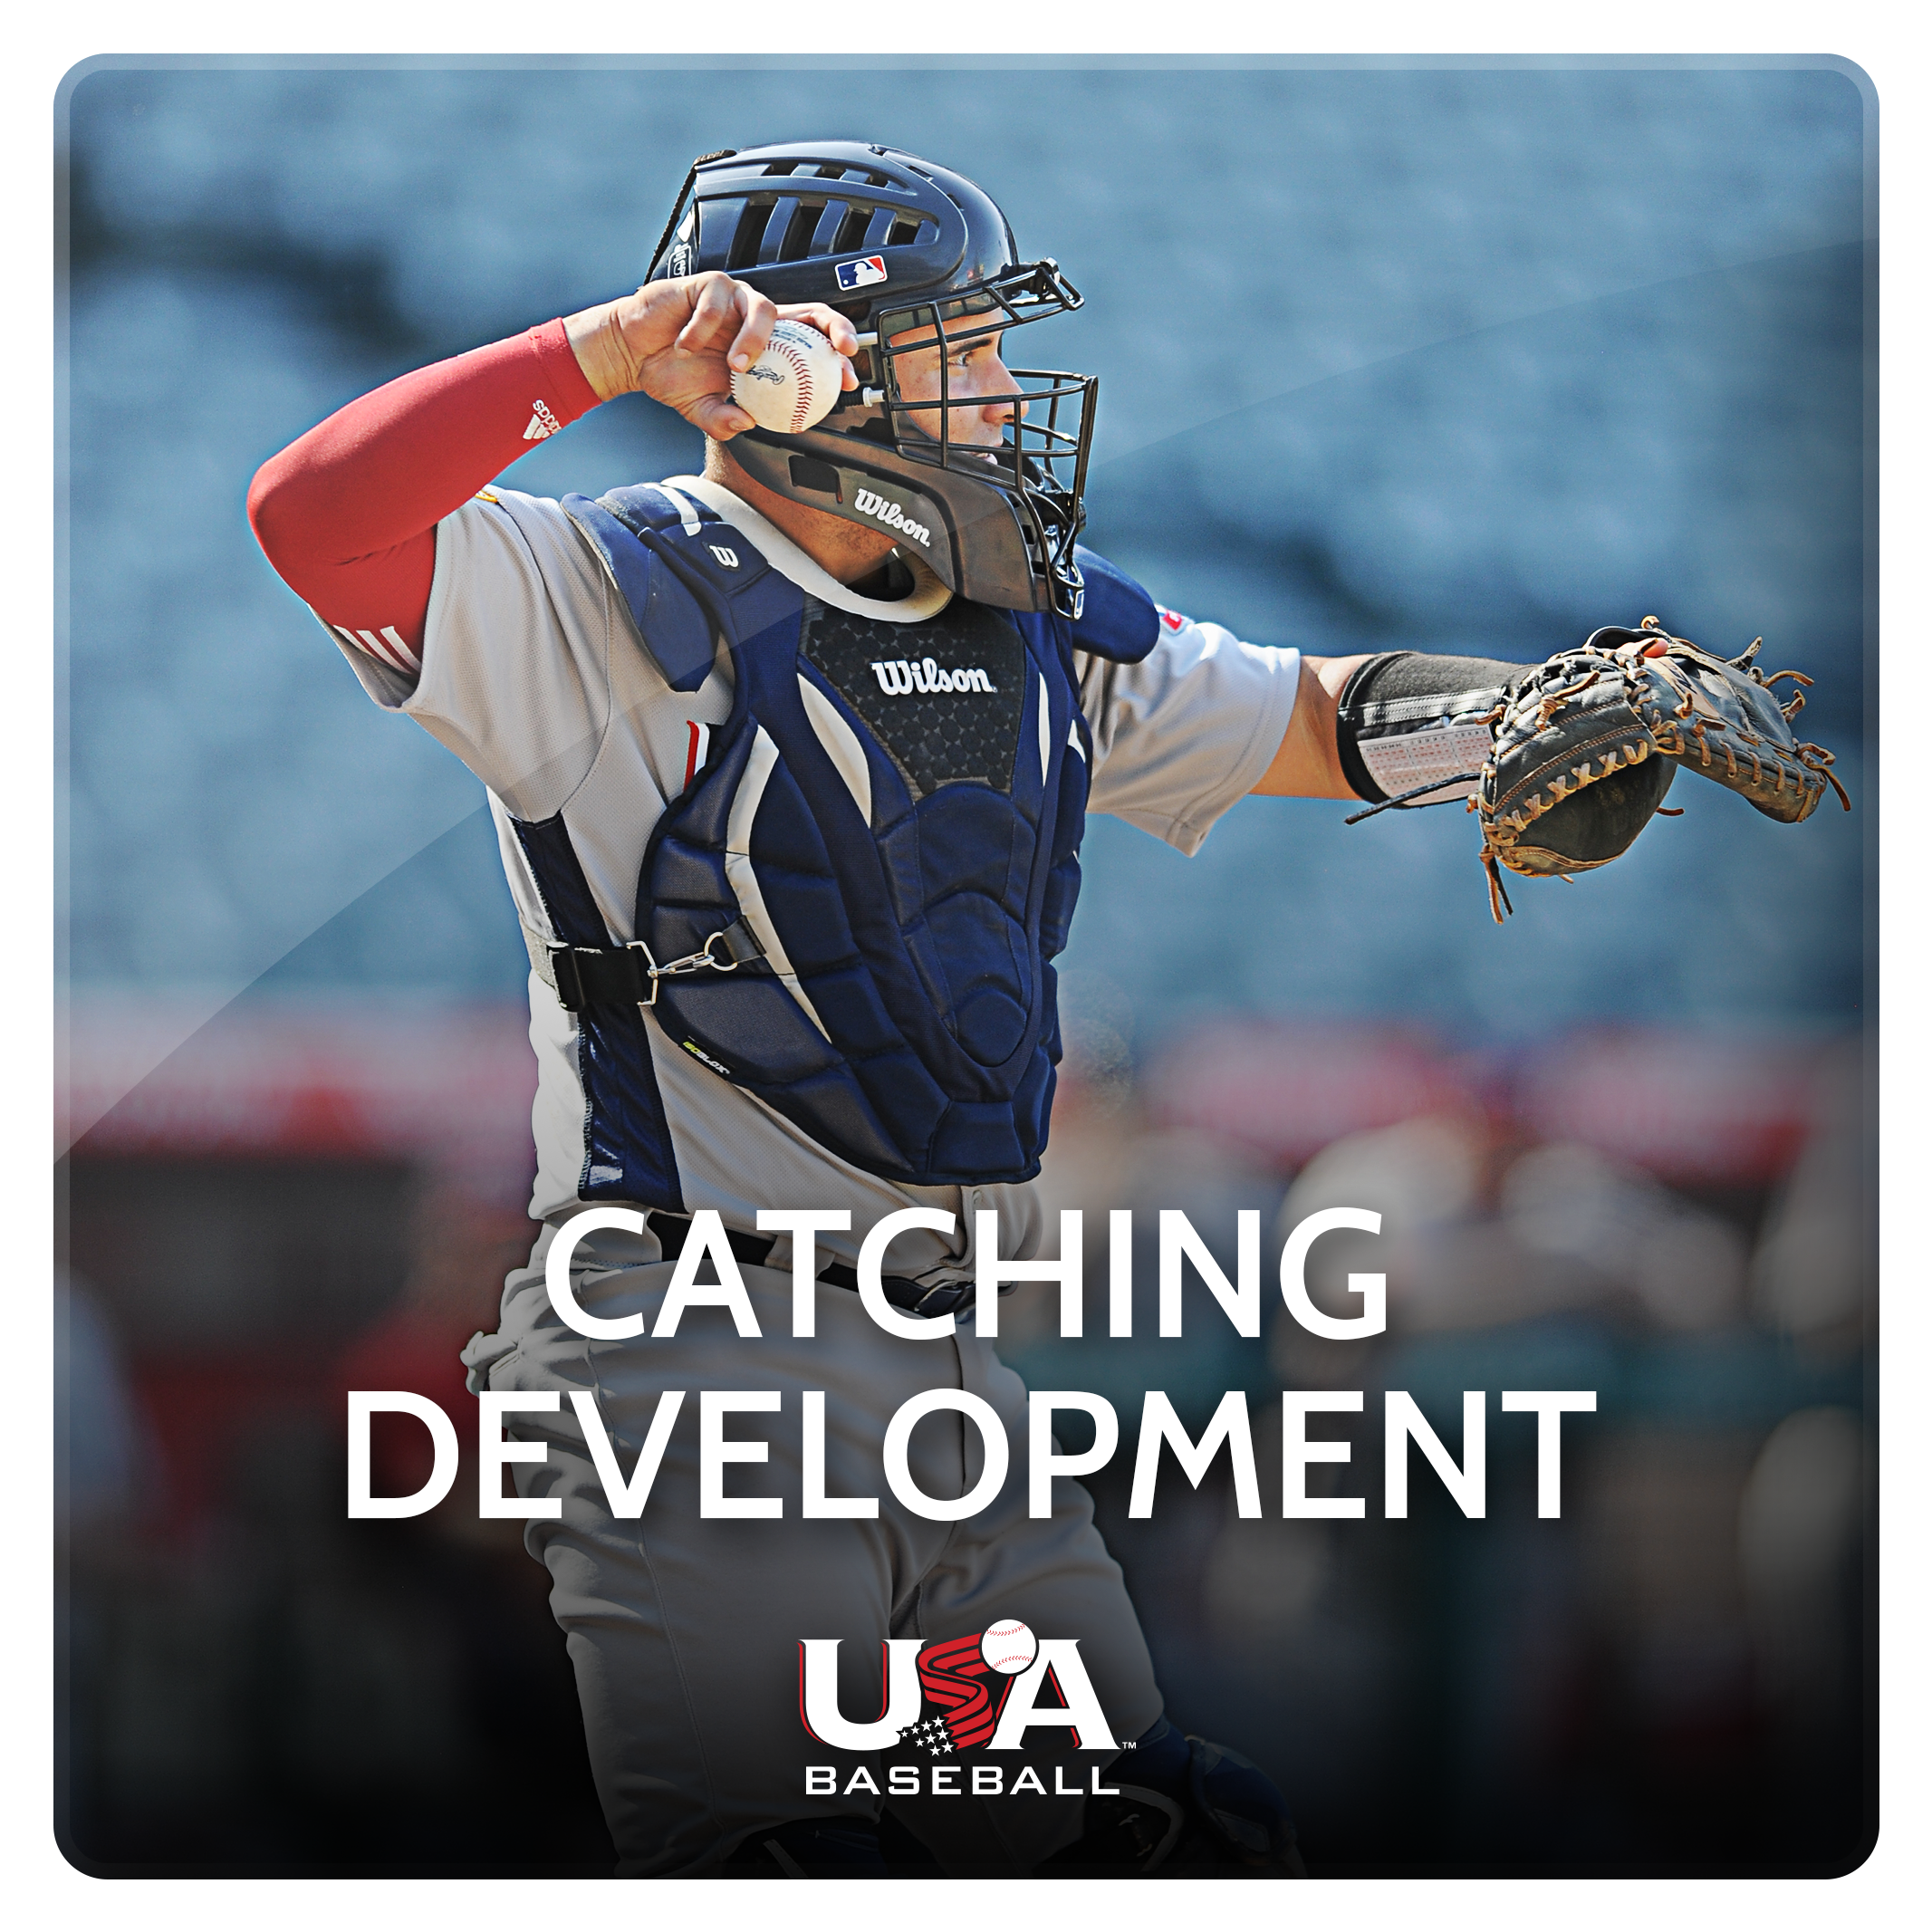 Catching Development